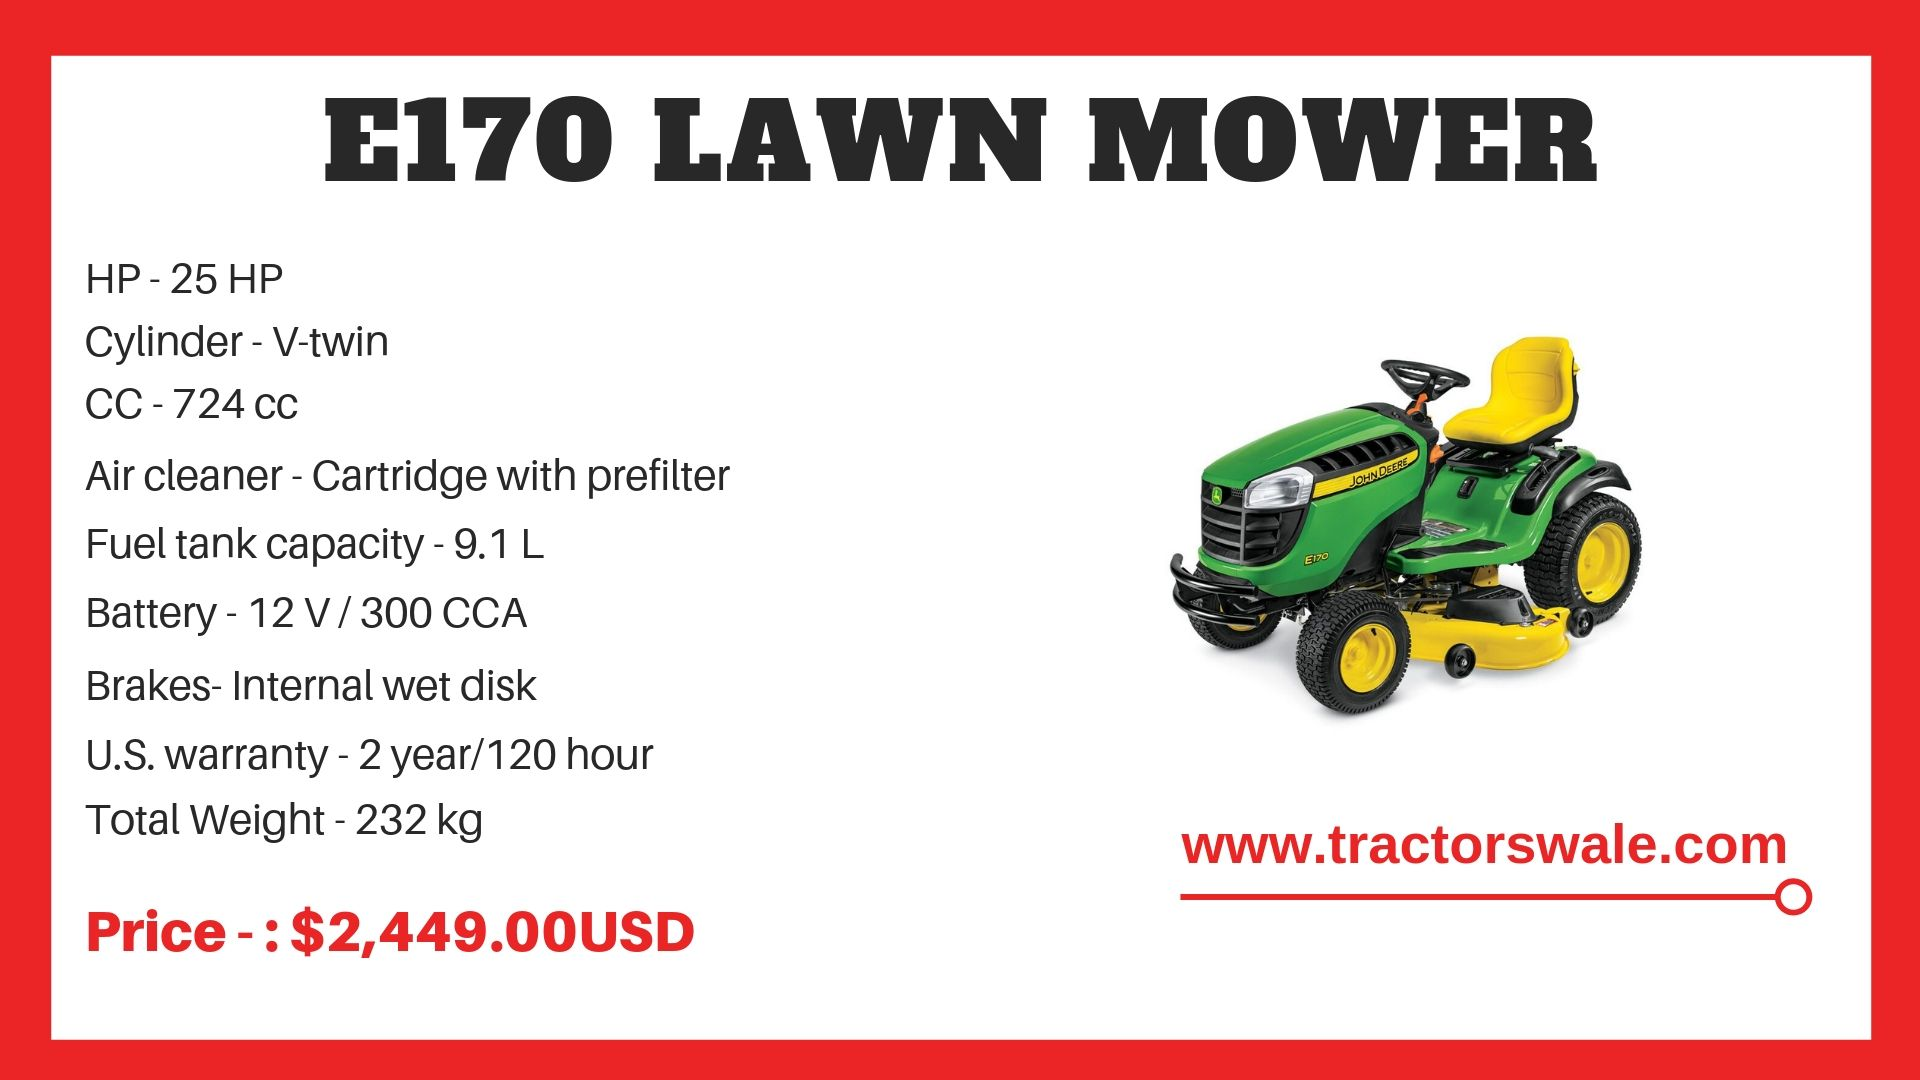 John Deere Tractor e170 Specifications